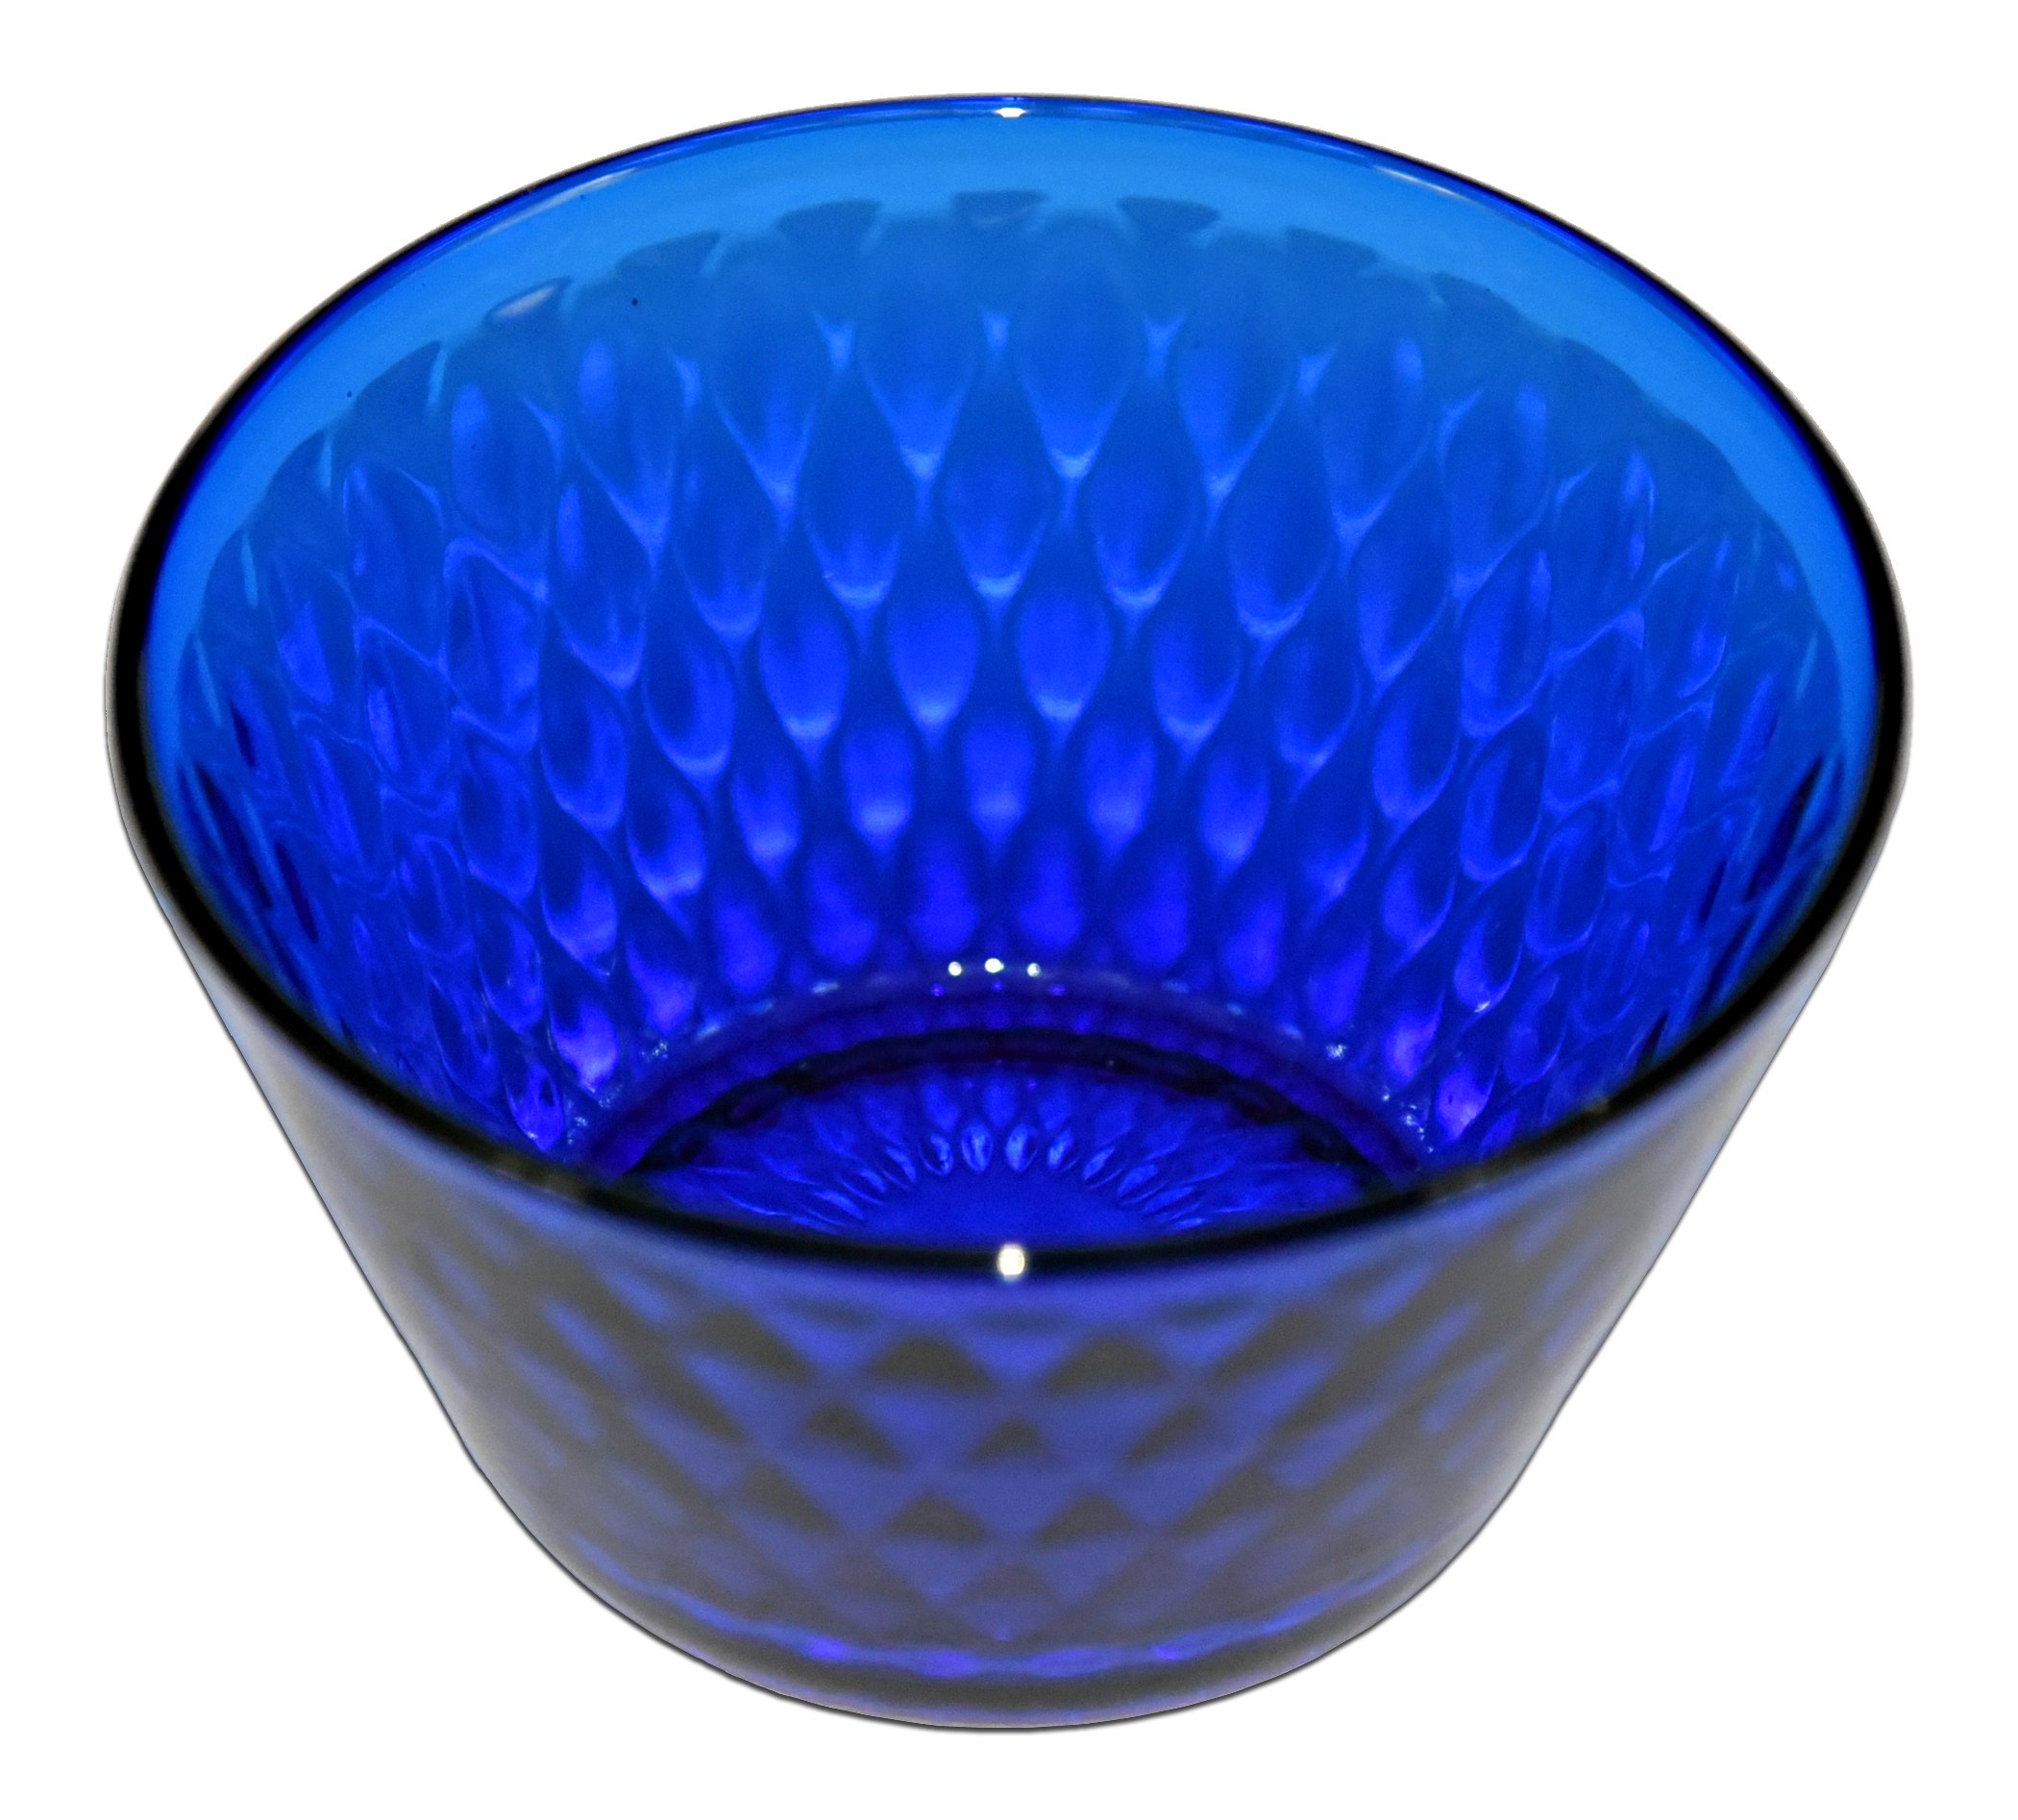 Fenton Diamond Optic Finger Bowl Looking Down